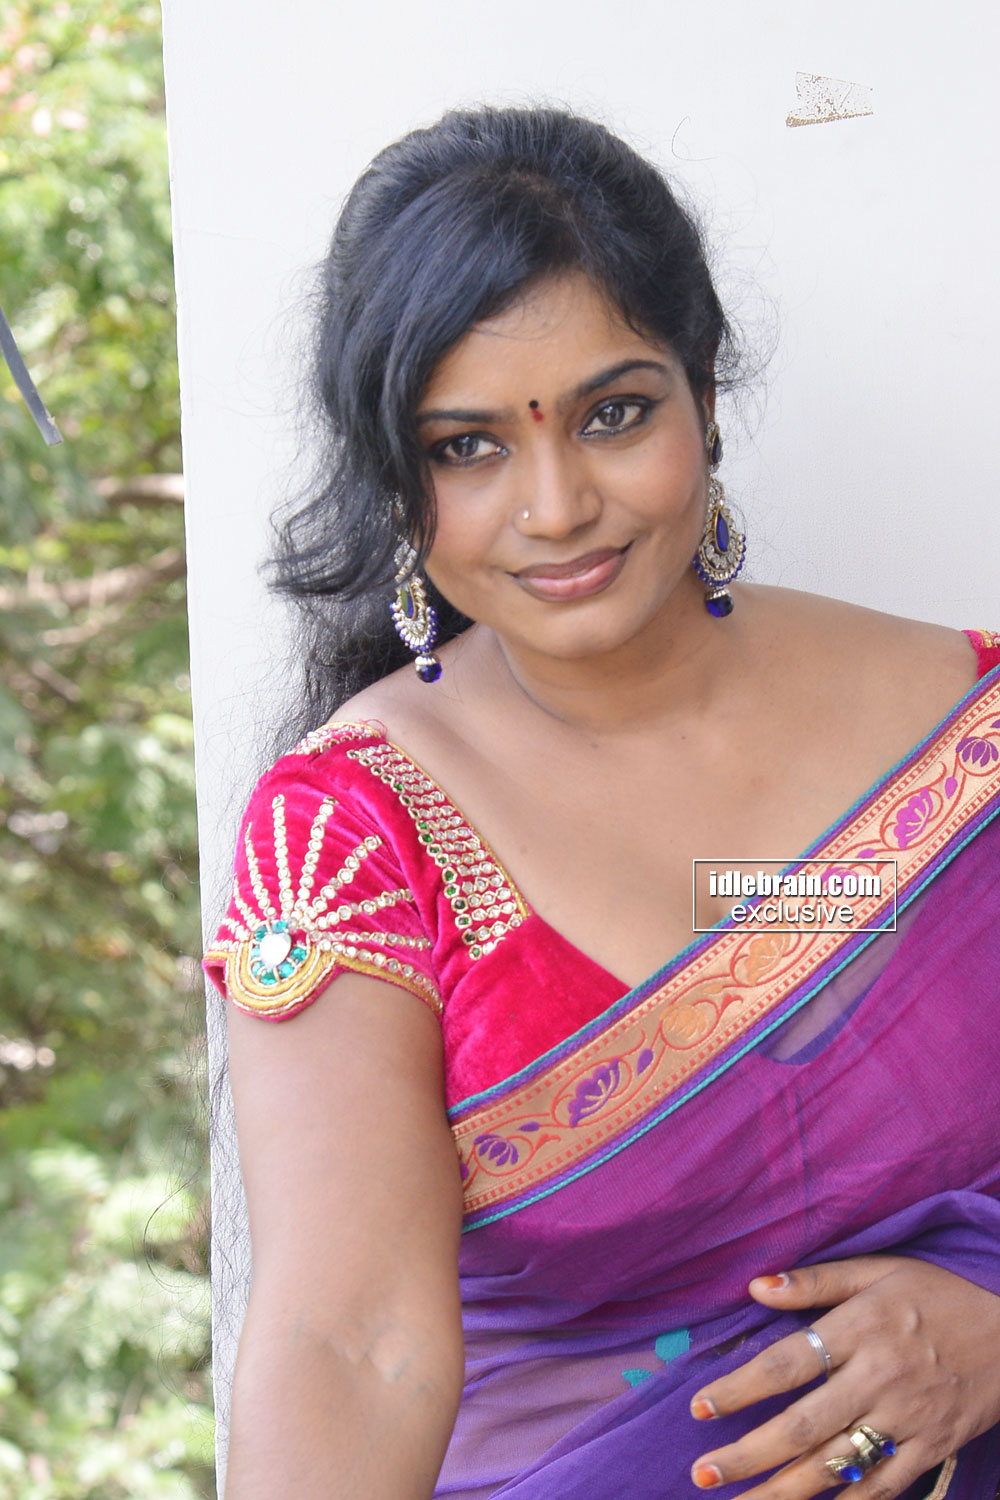 actress largest navel,cleavage,hip,waist photo collections ...